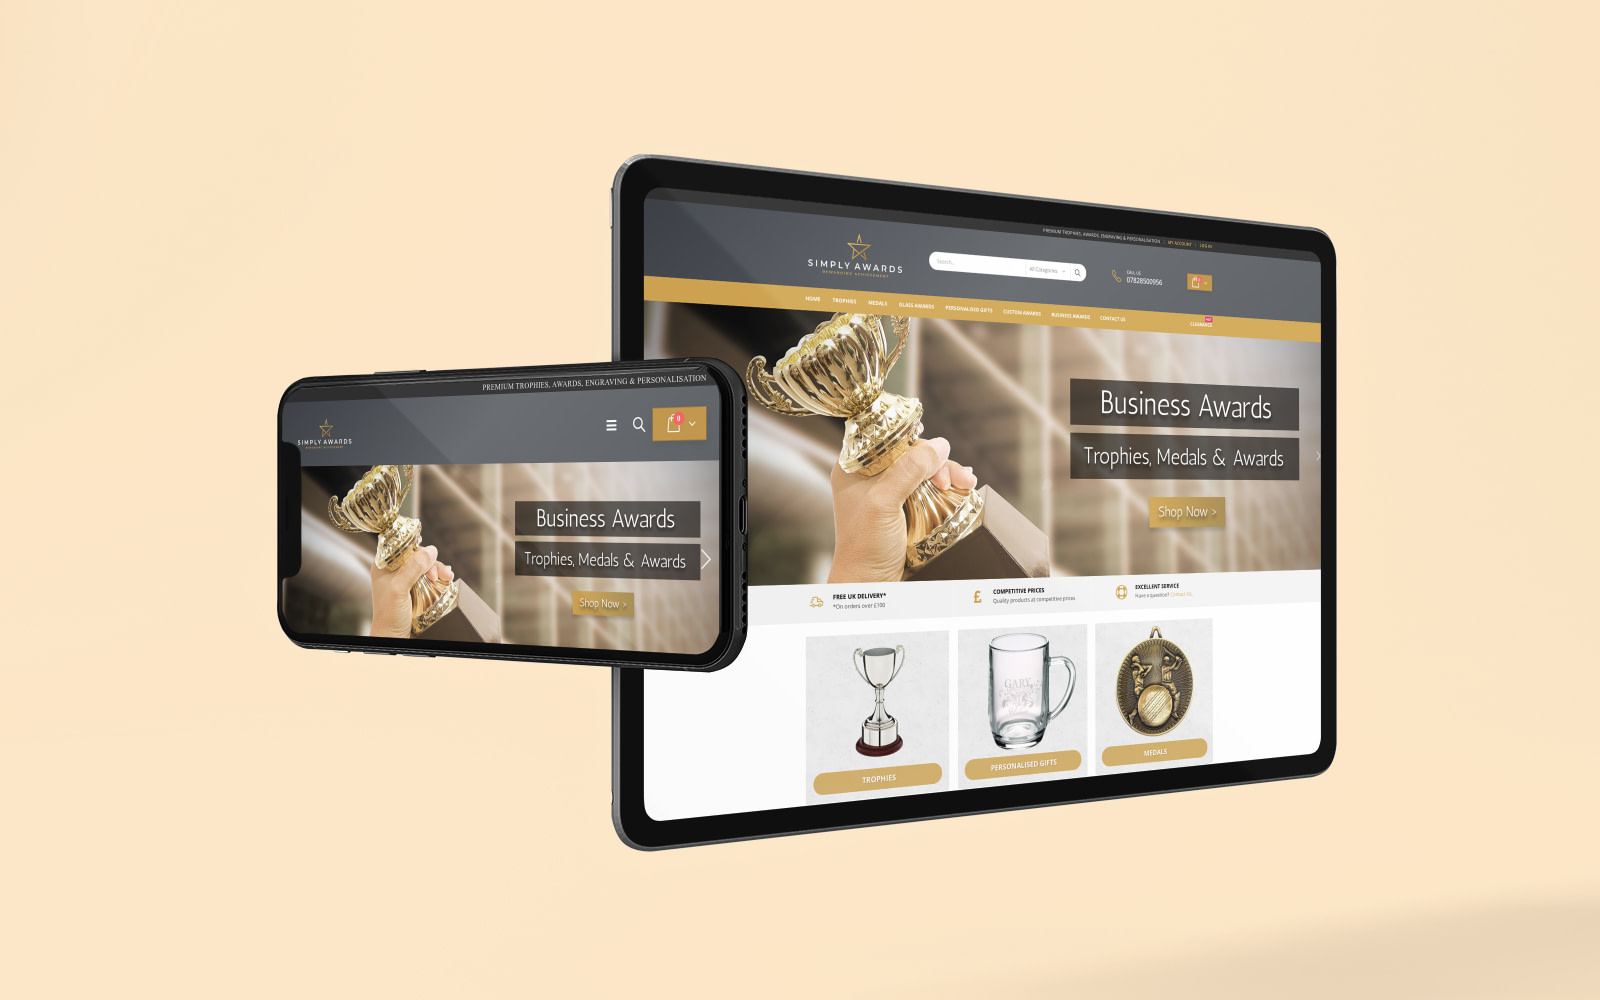 Simply Awards Ecommerce Website